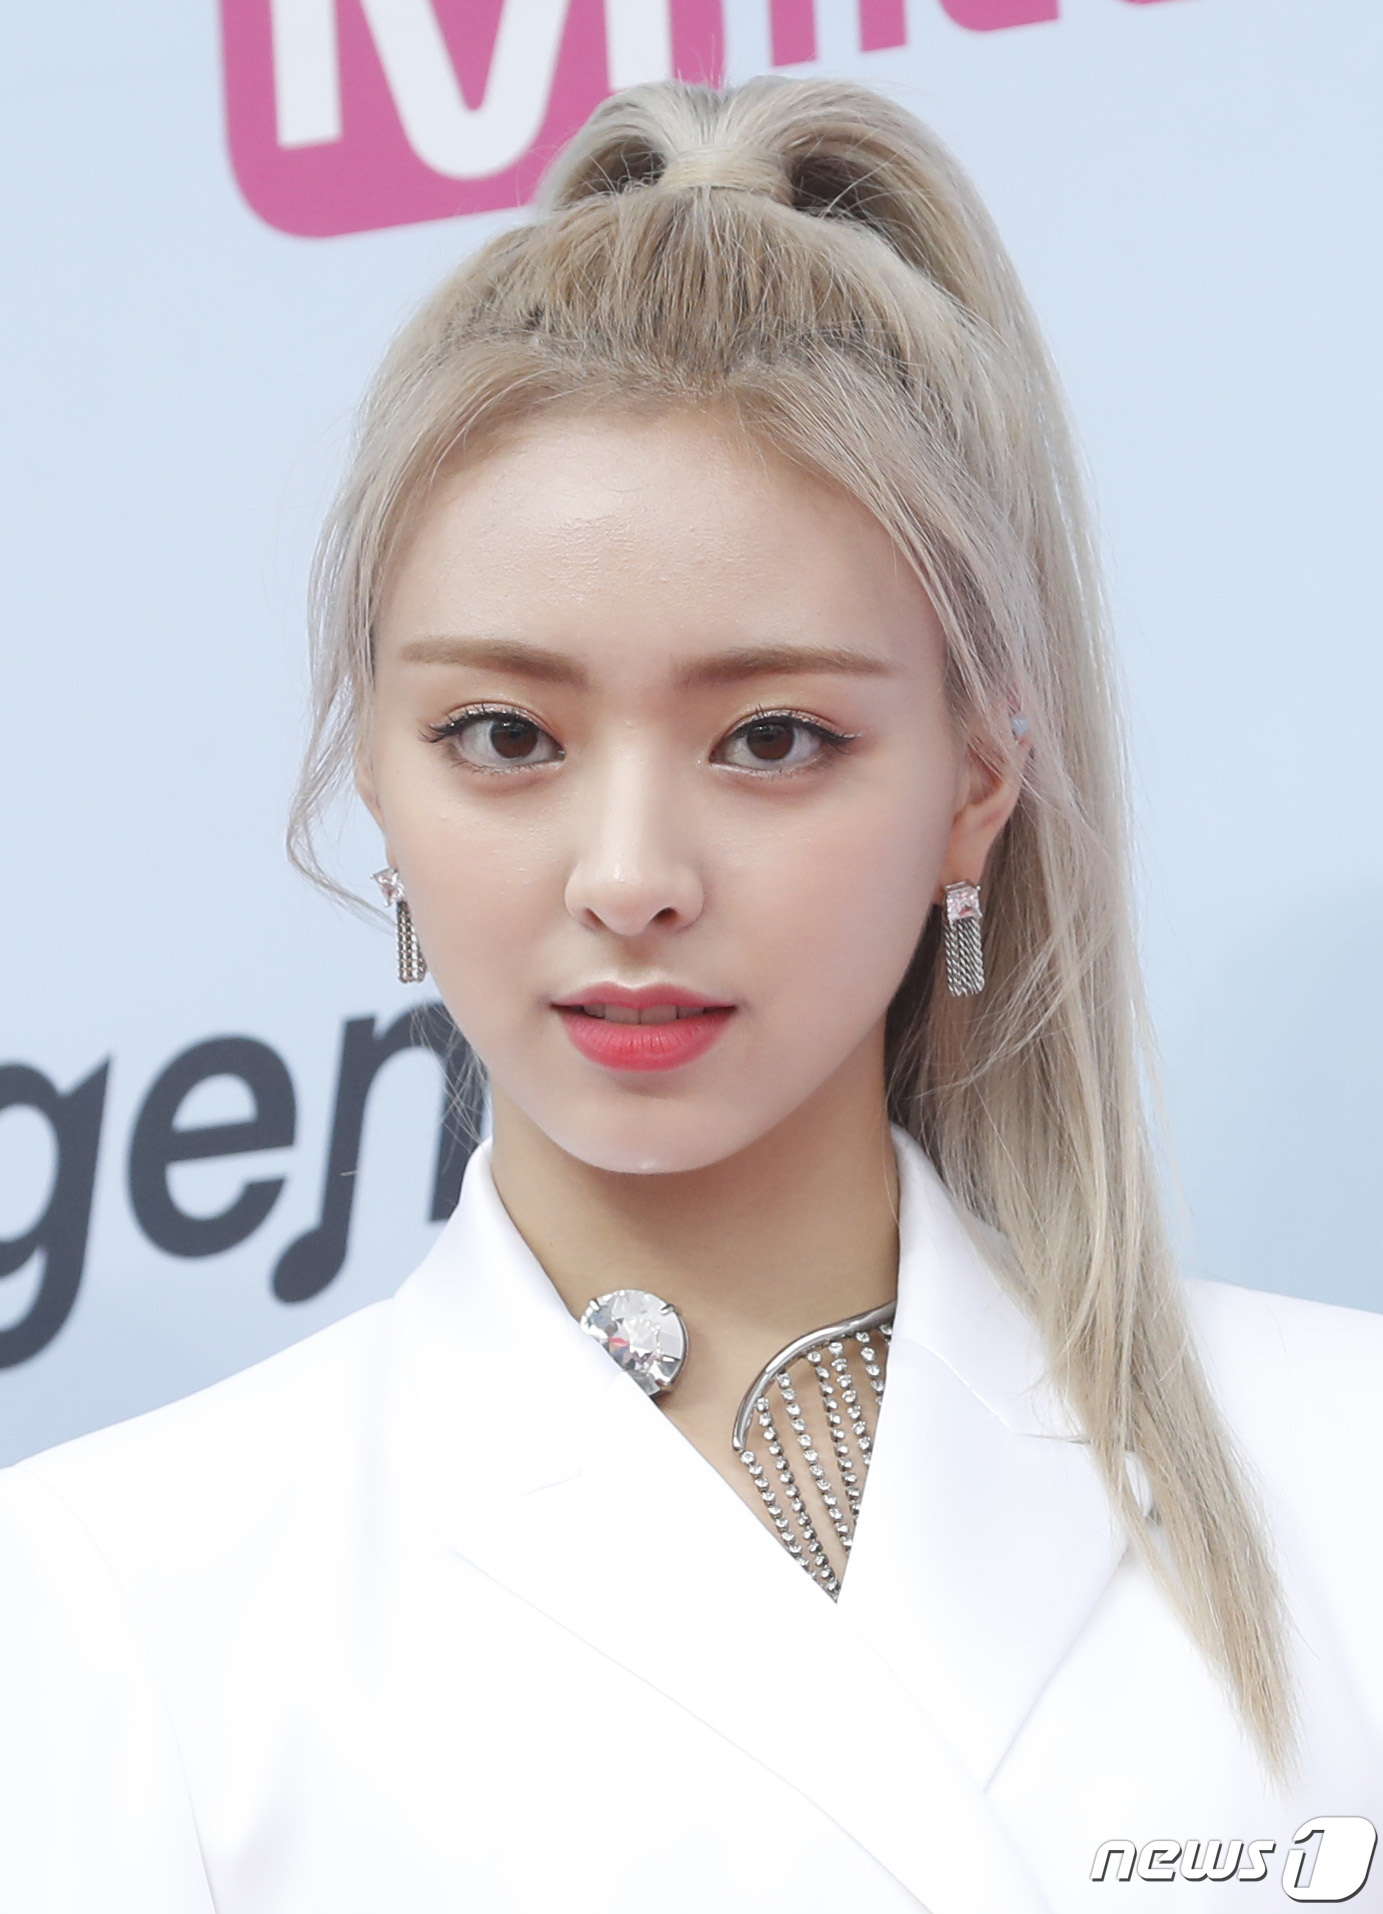 ITZY's Yuna Takes Everyone's Breath Away With Her Beauty ...